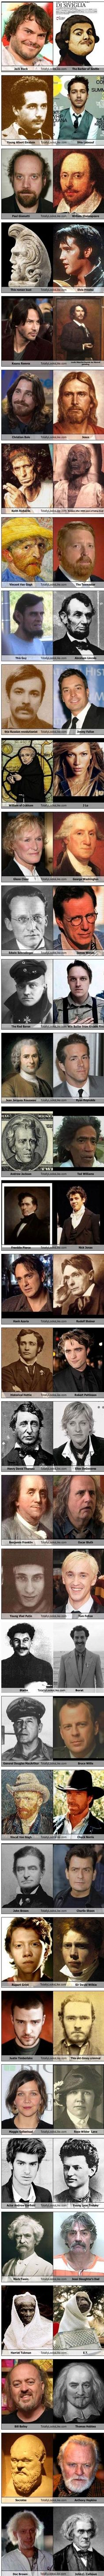 35 Amazing Look-A-Likes